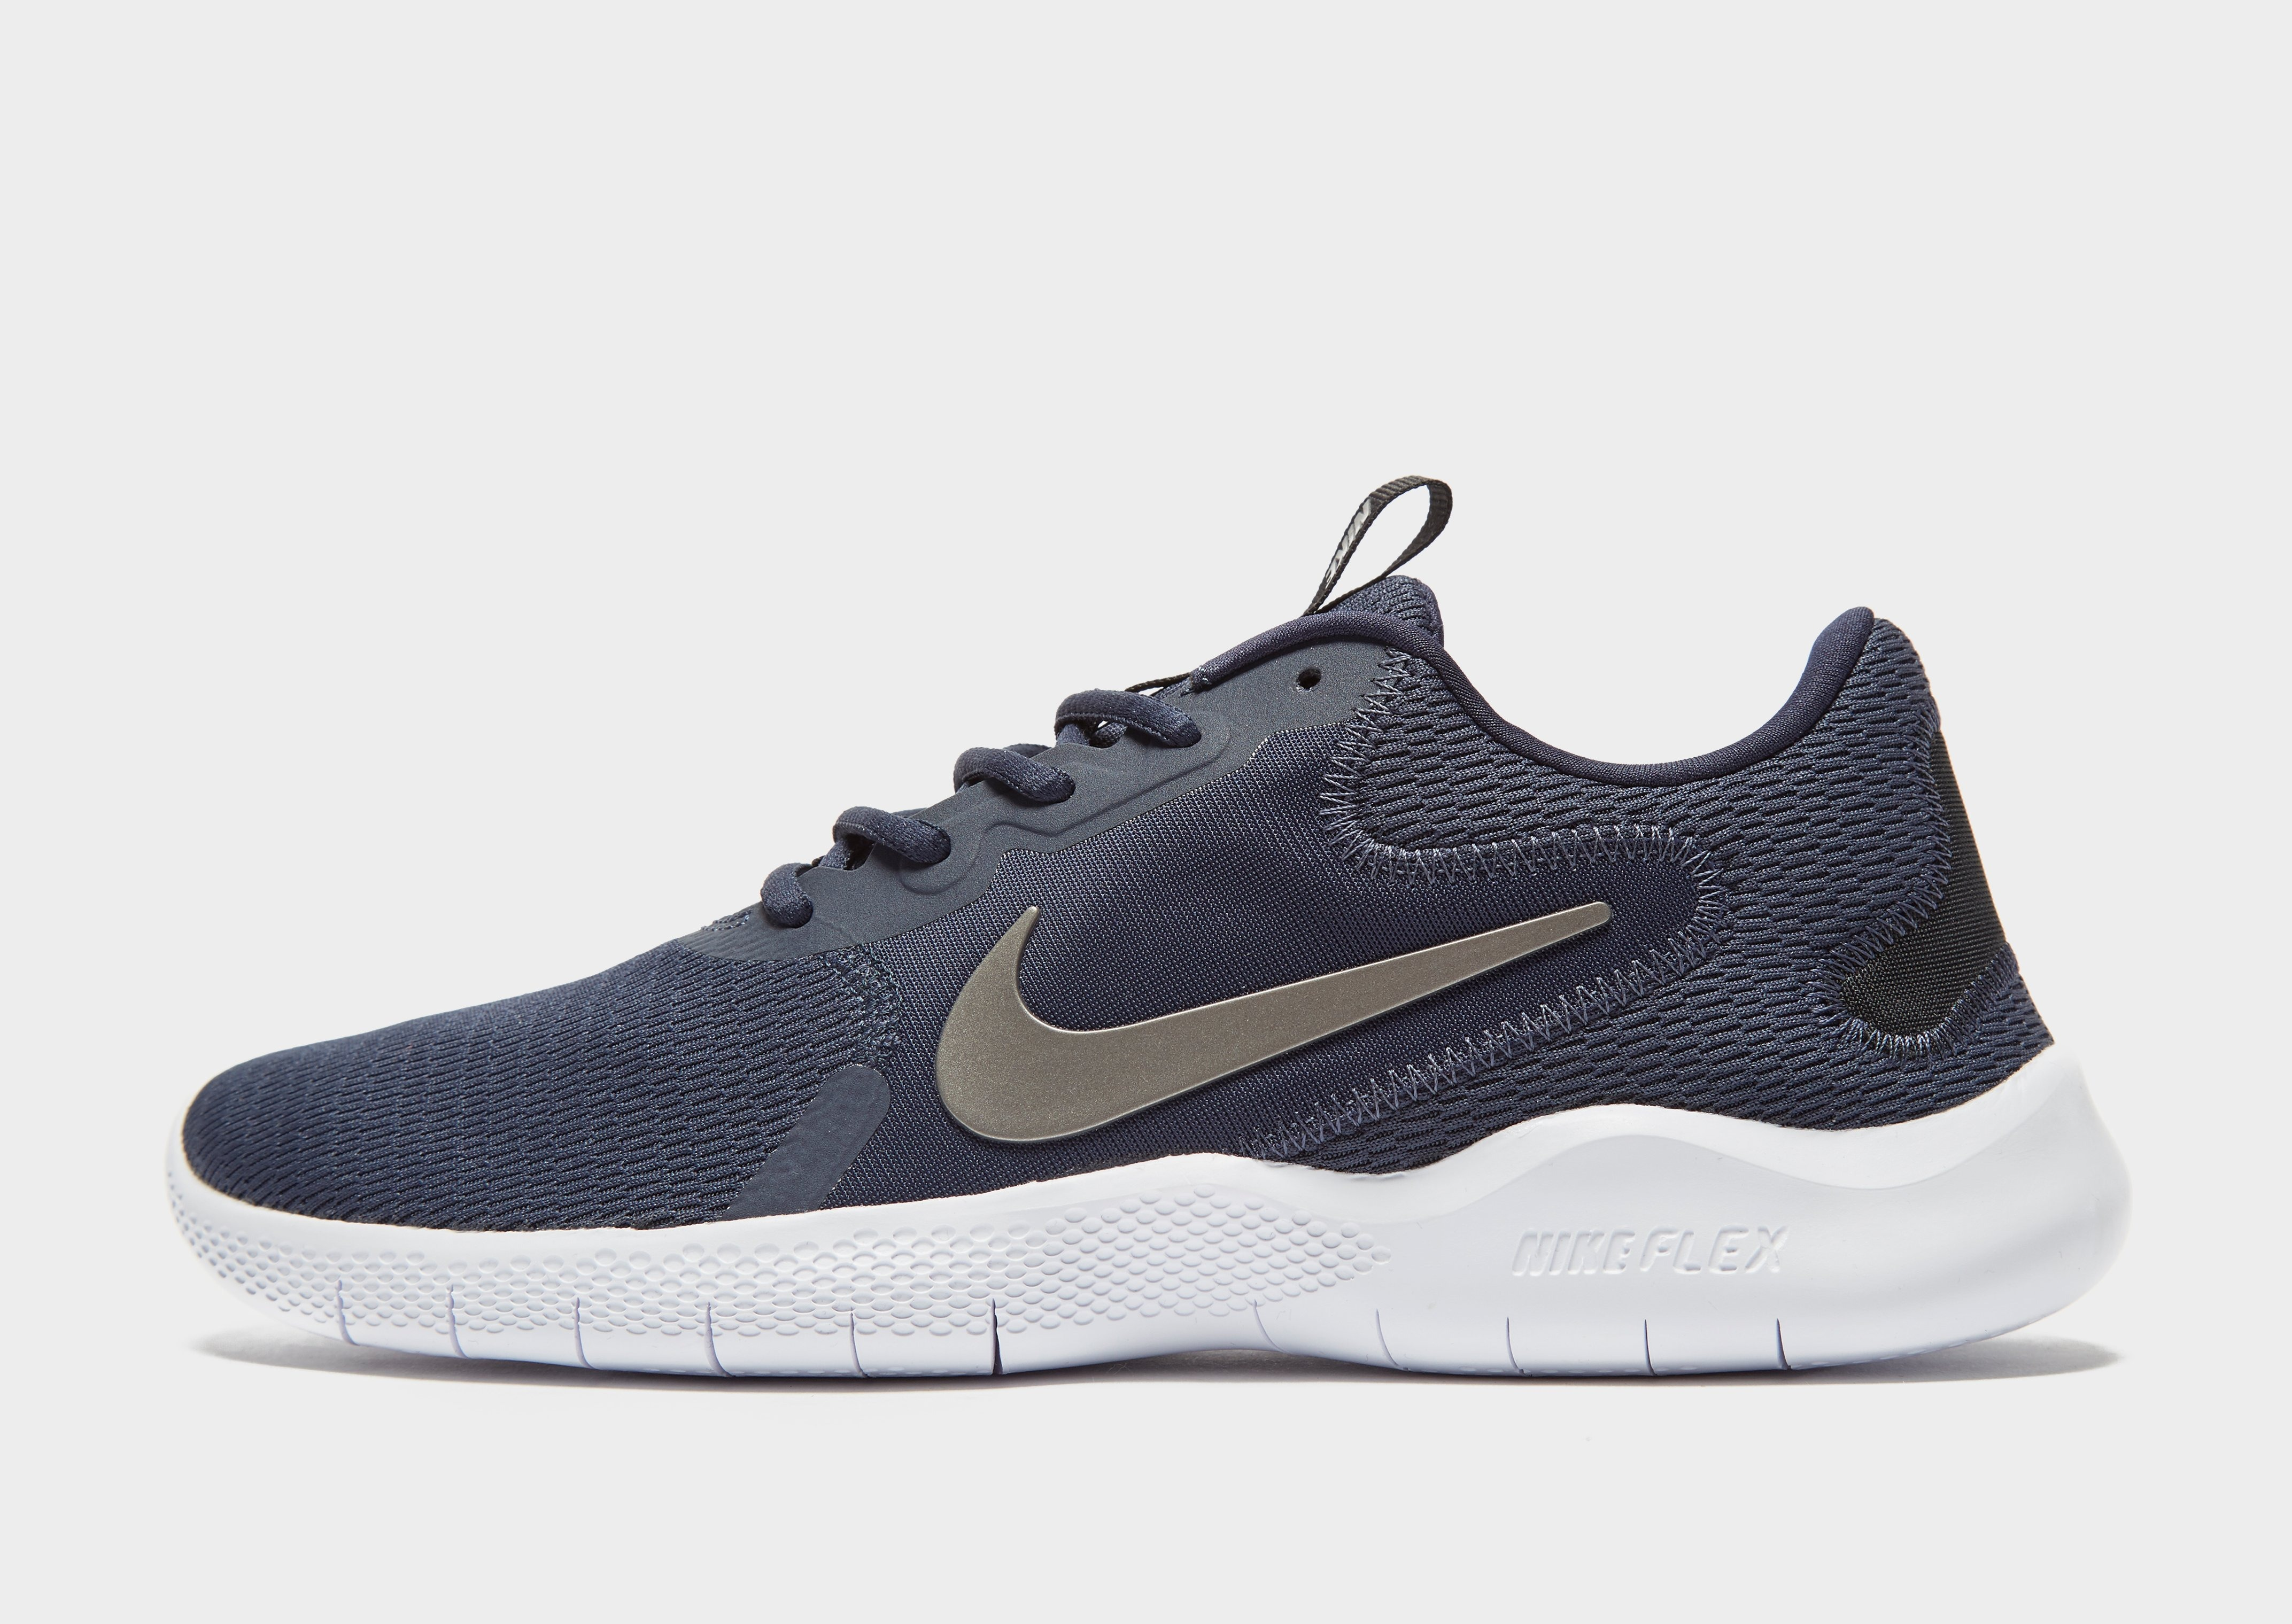 Nike Flex Experience RN 6 Reviewed